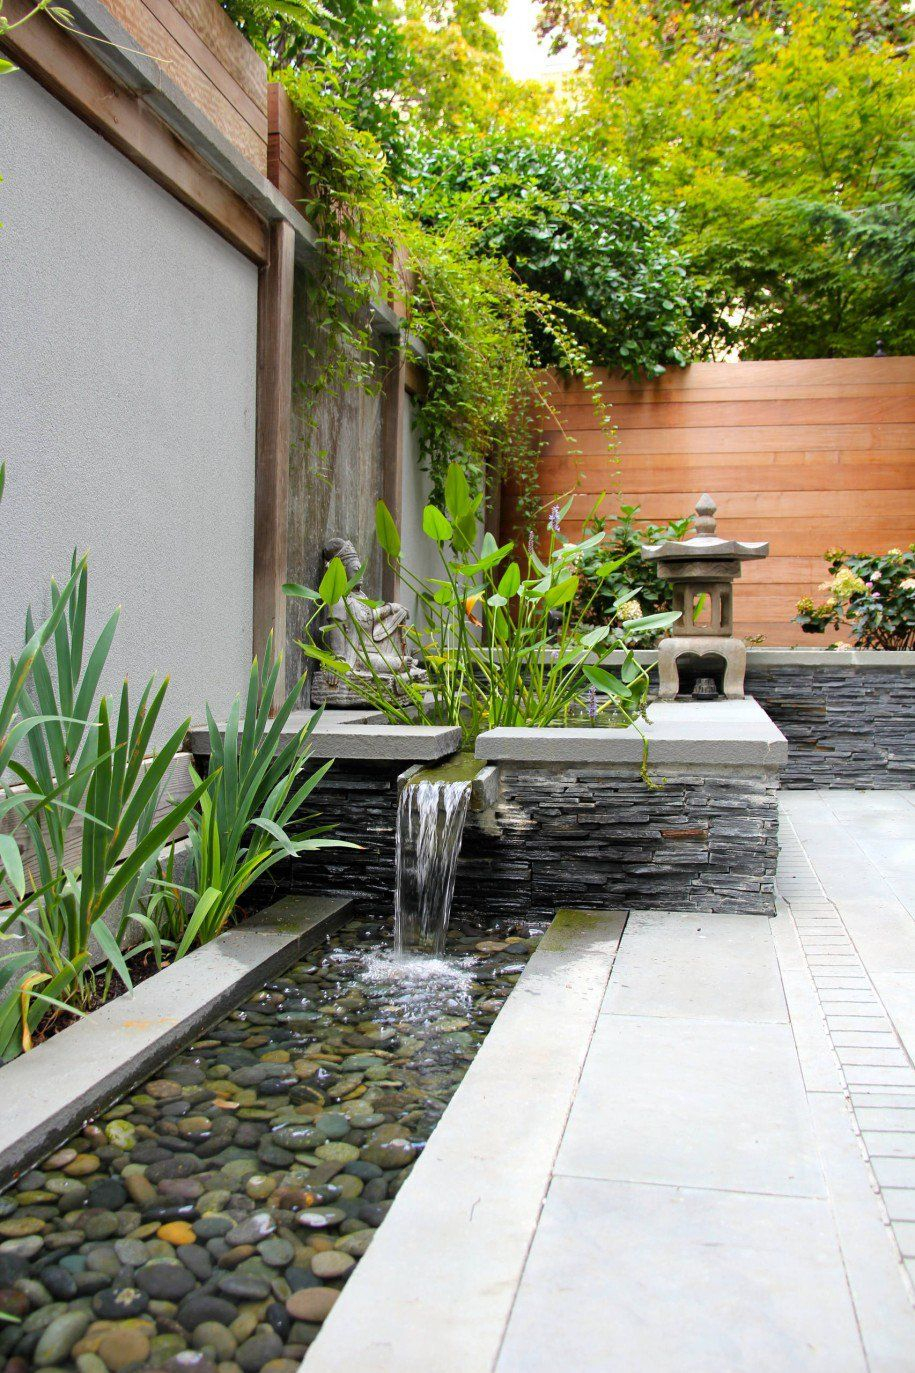 17 Asian Backyard Designs That You Need To See Outdoor Living with regard to Asian Backyard Ideas